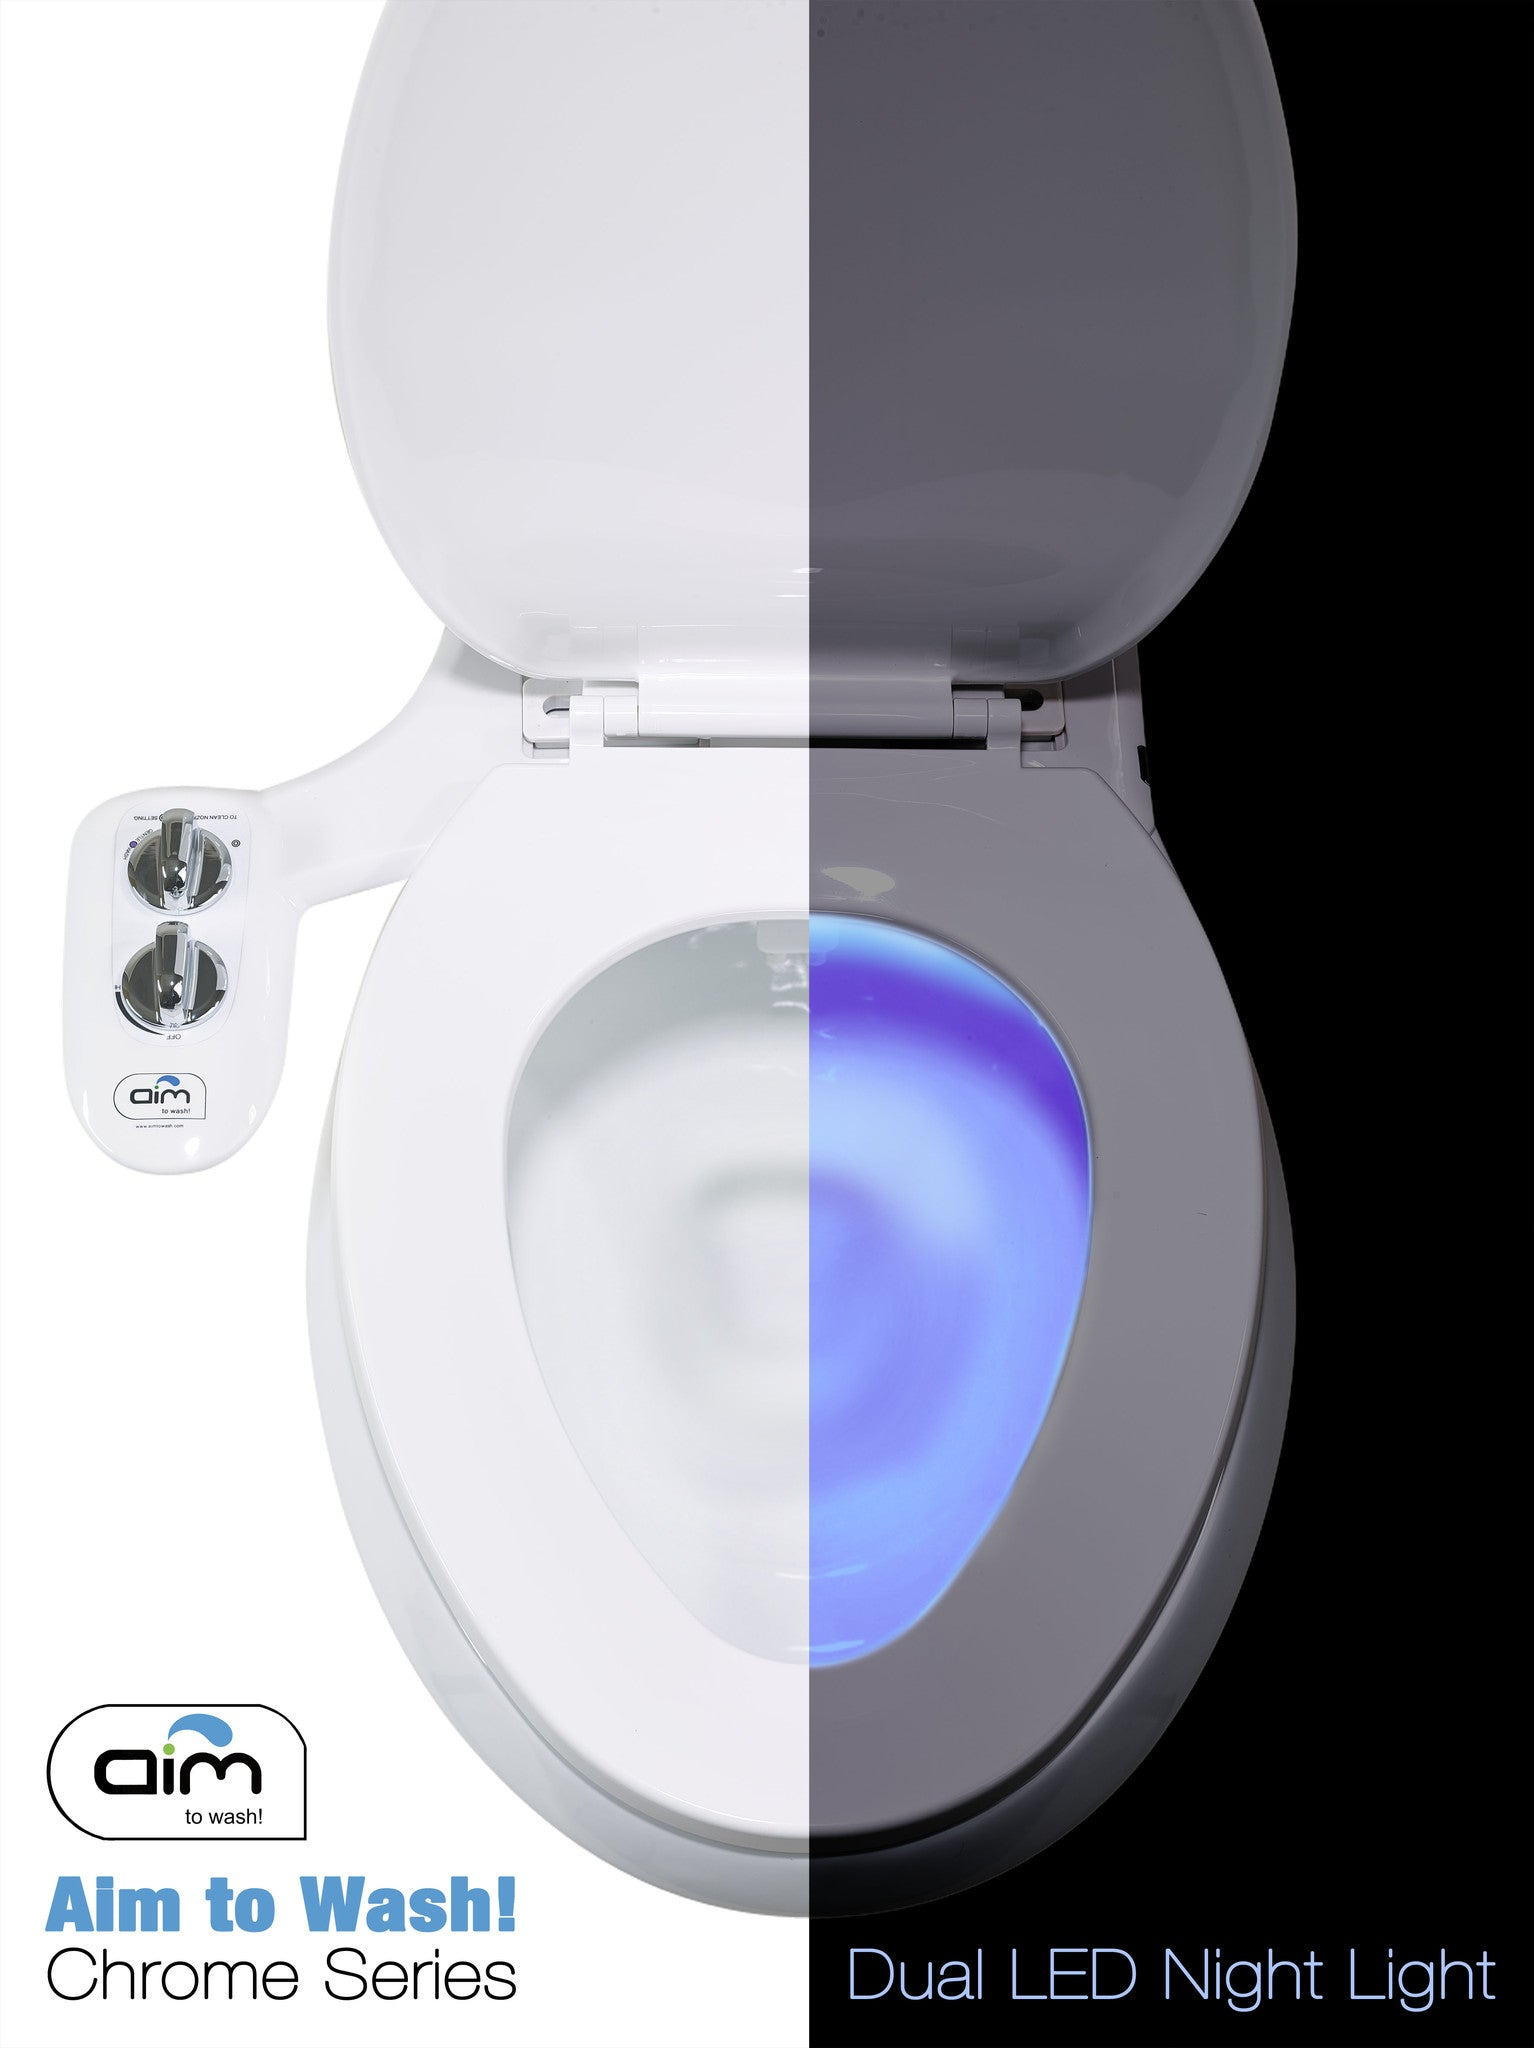 The Bidet Attachment: The First upgrade to the Toilet in over a Century